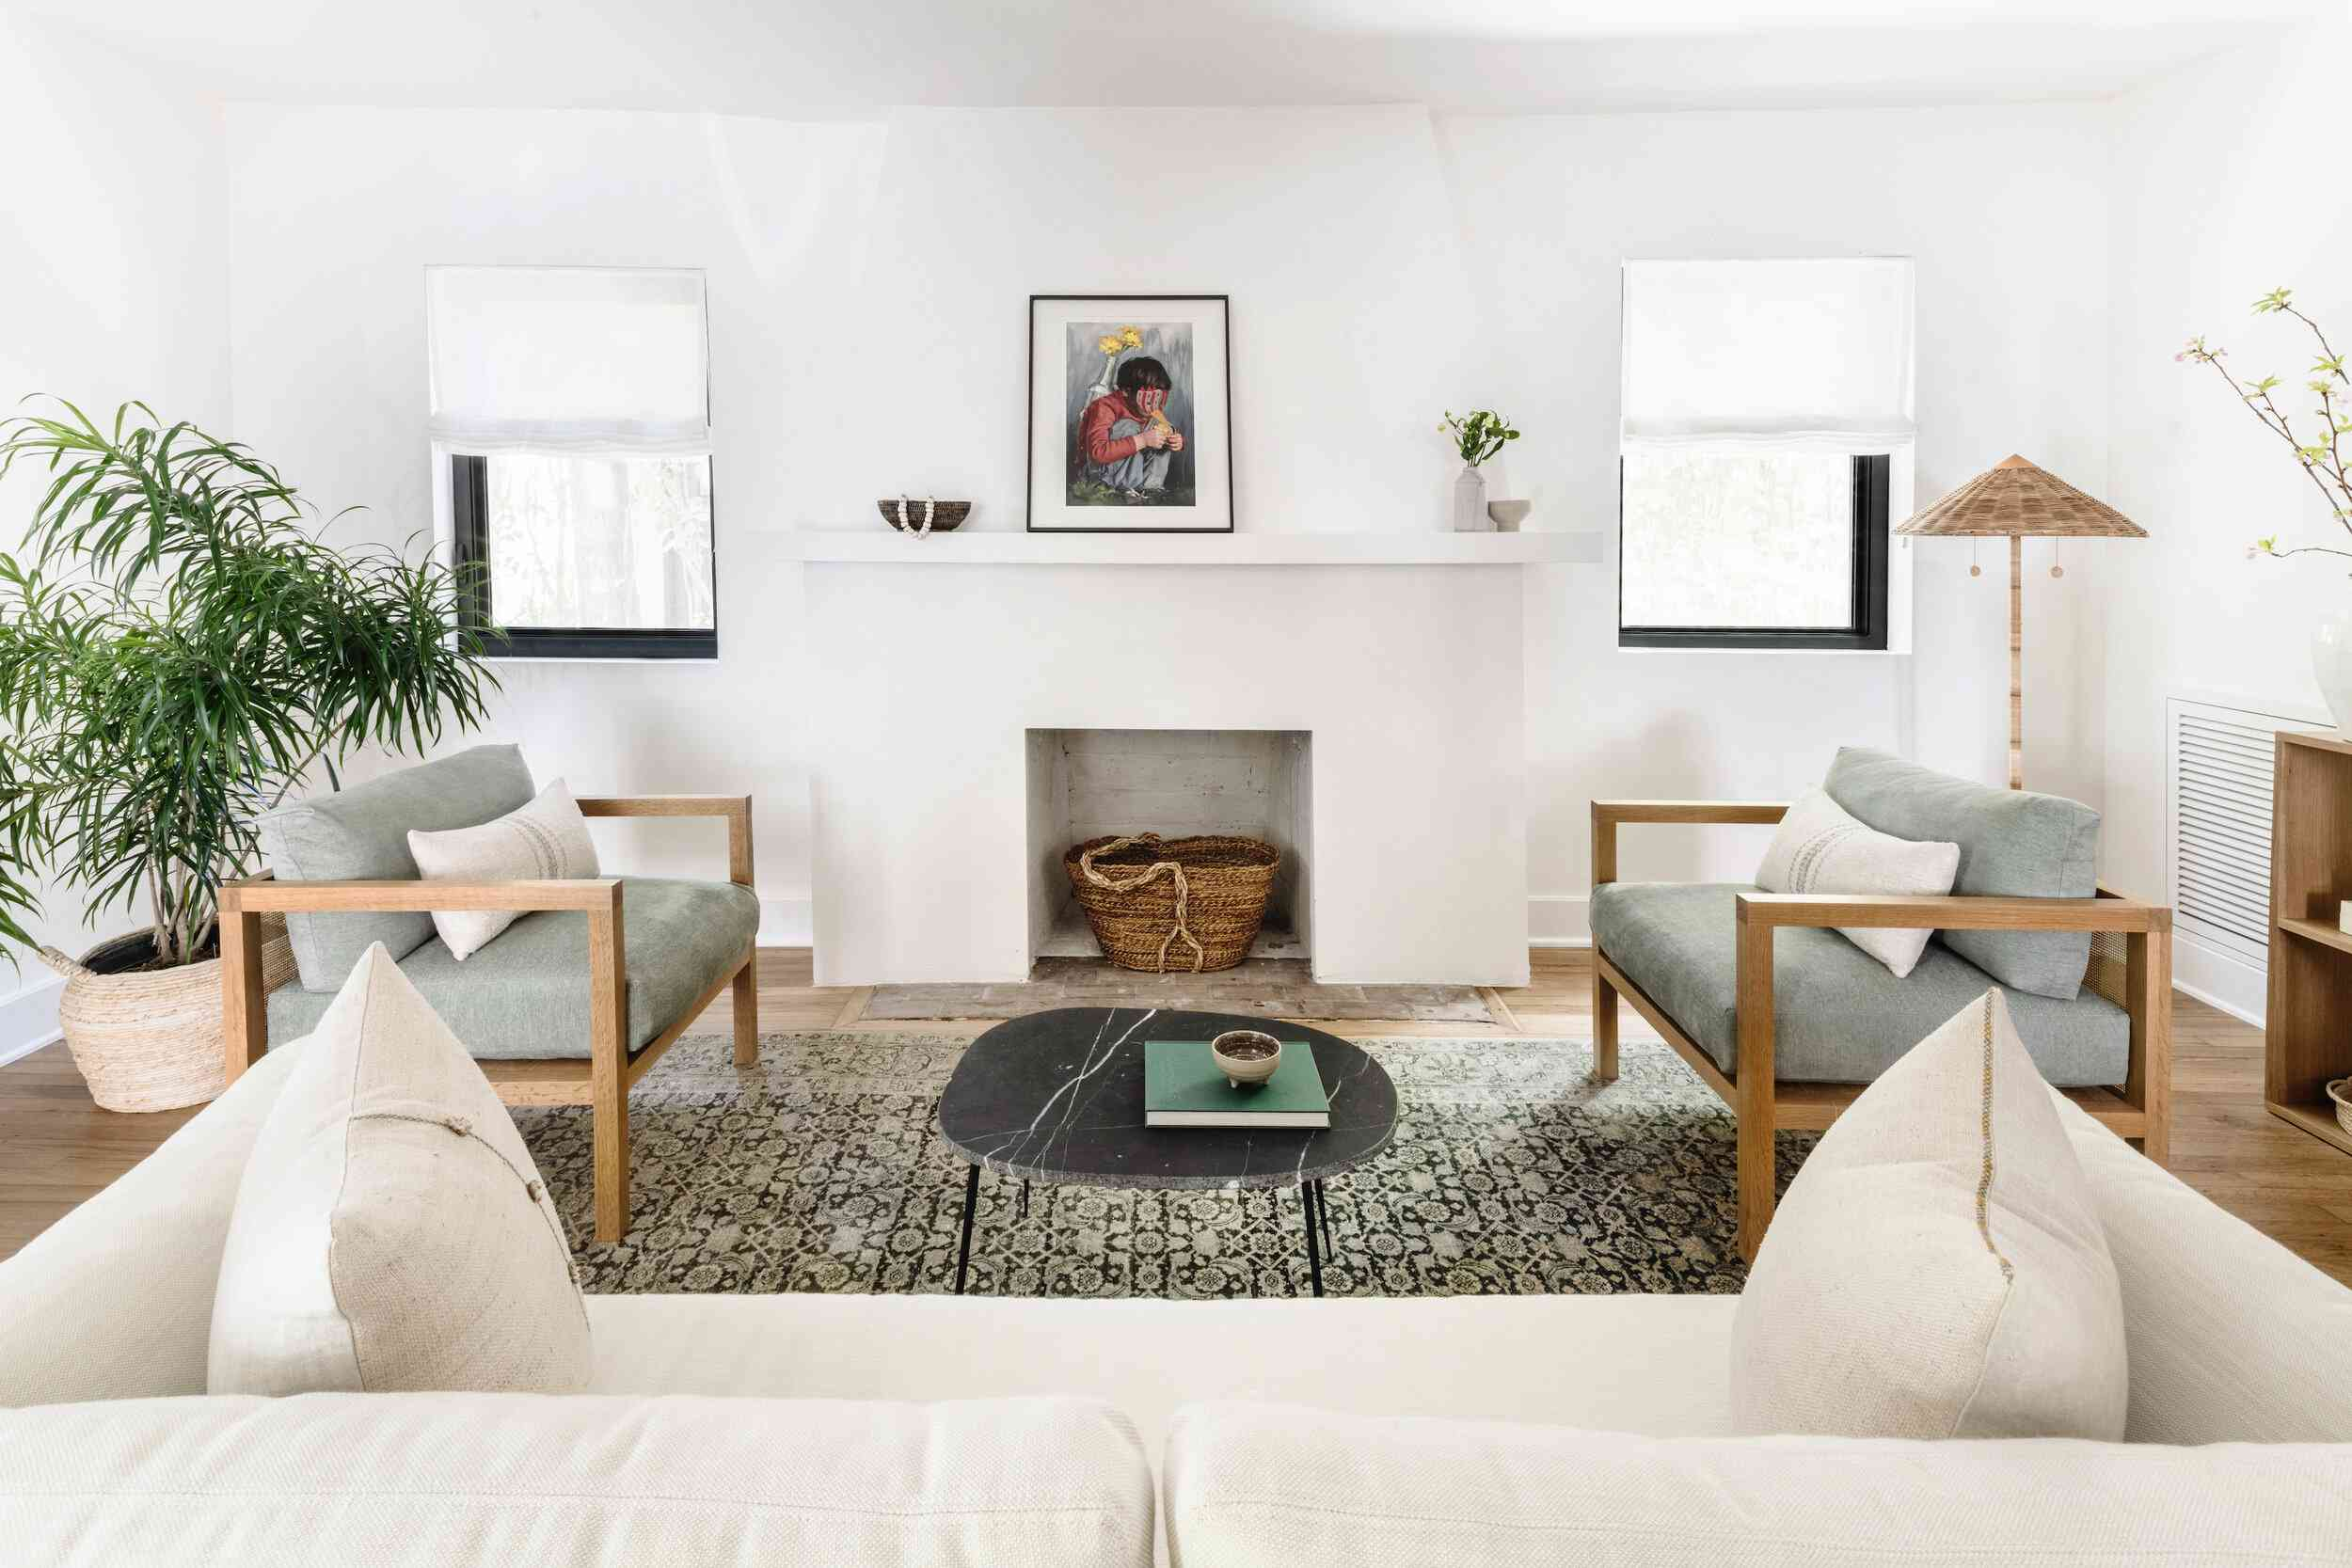 Simple white fireplace